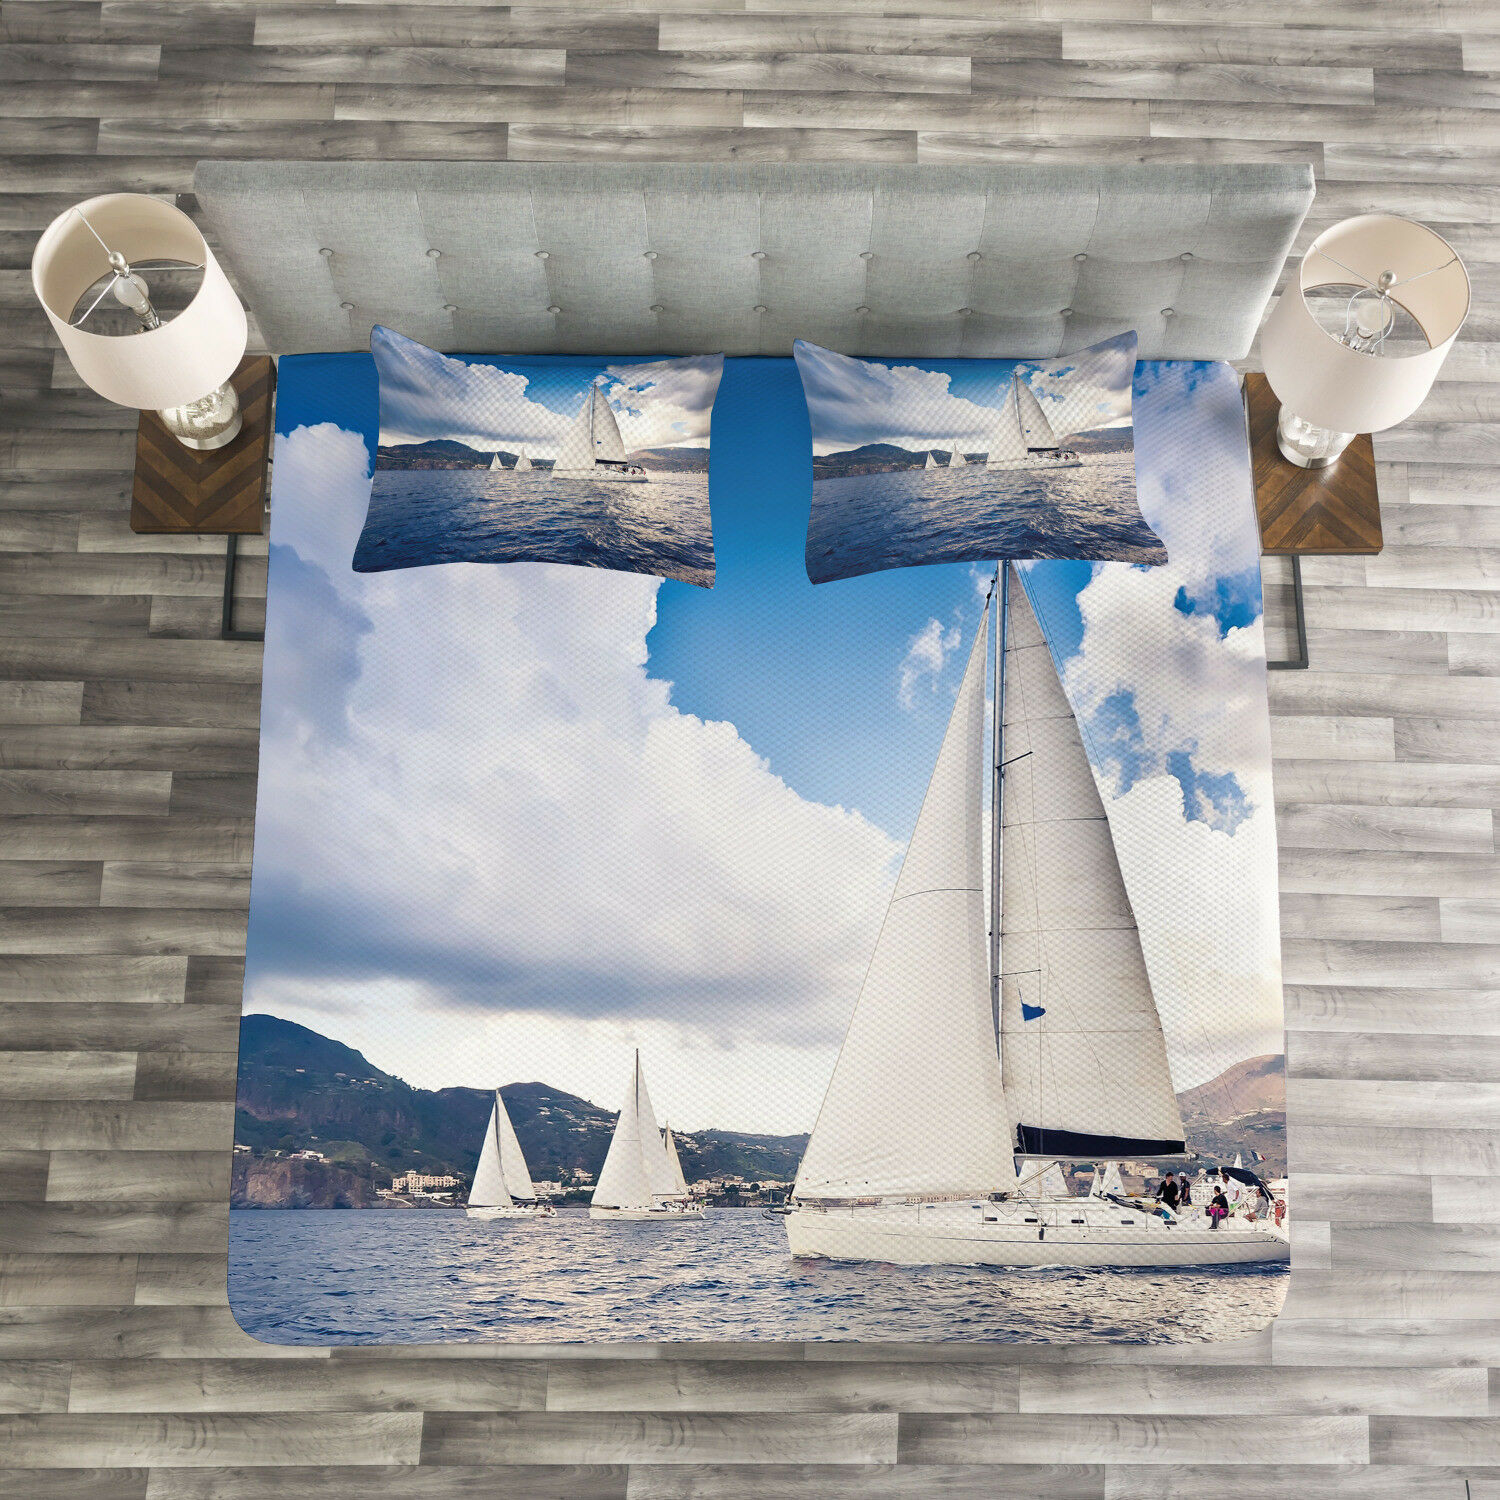 Nautical Quilted Bedspread & Pillow Shams Set, Sailing Boat on Sea Print